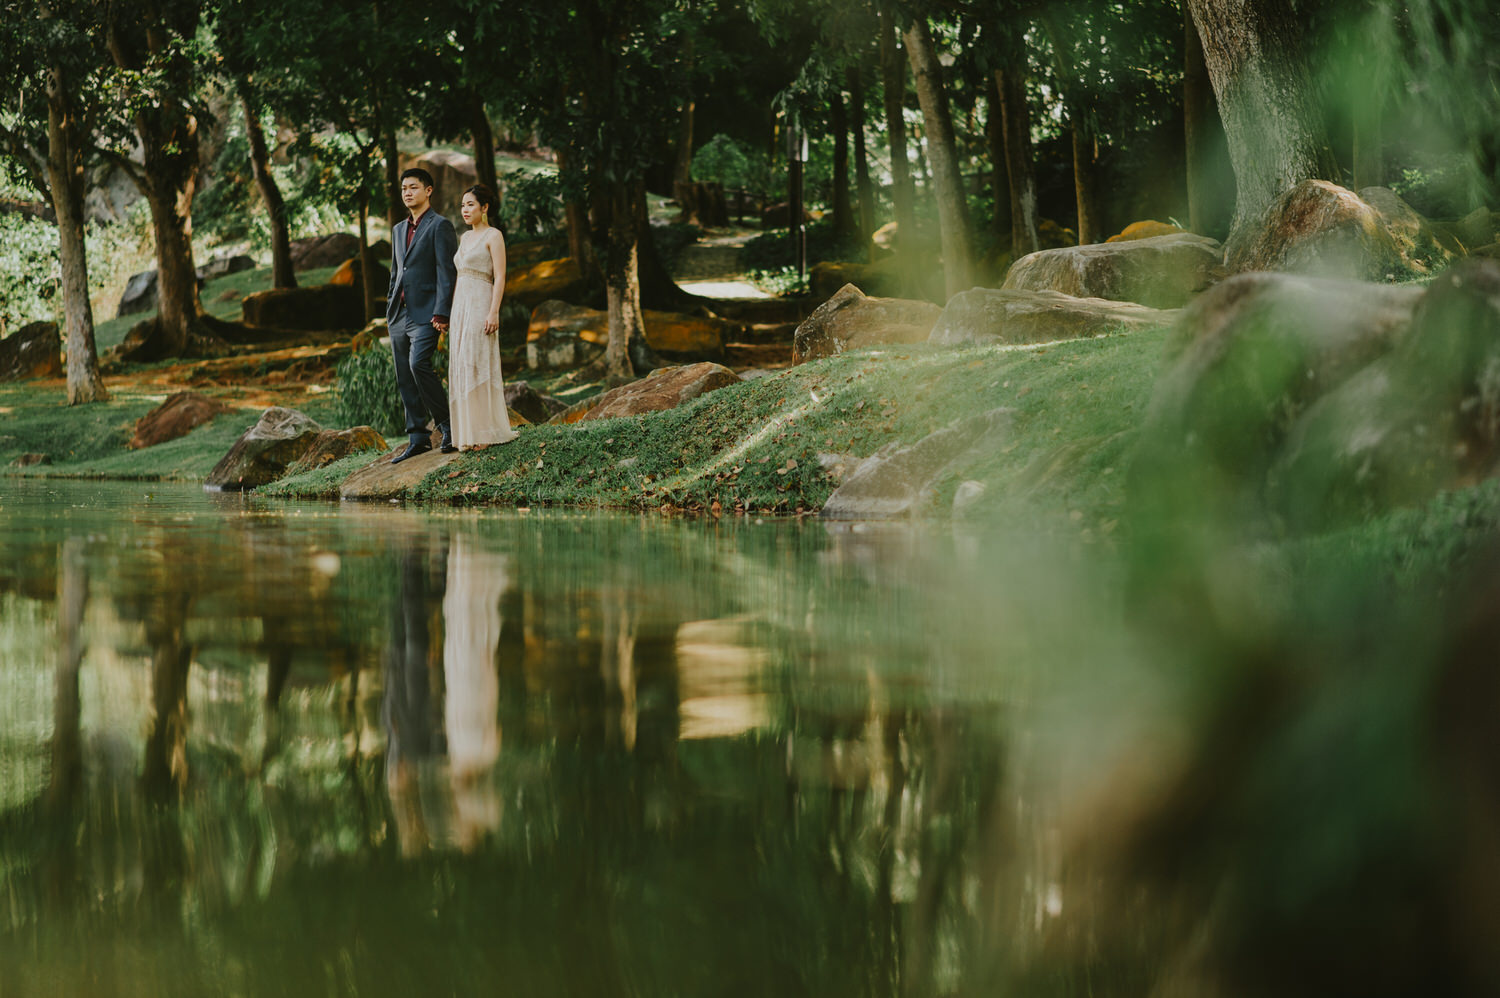 singapore prewedding destination - singapore wedding - diktatphotography - kadek artayasa - nikole + ardika - 11